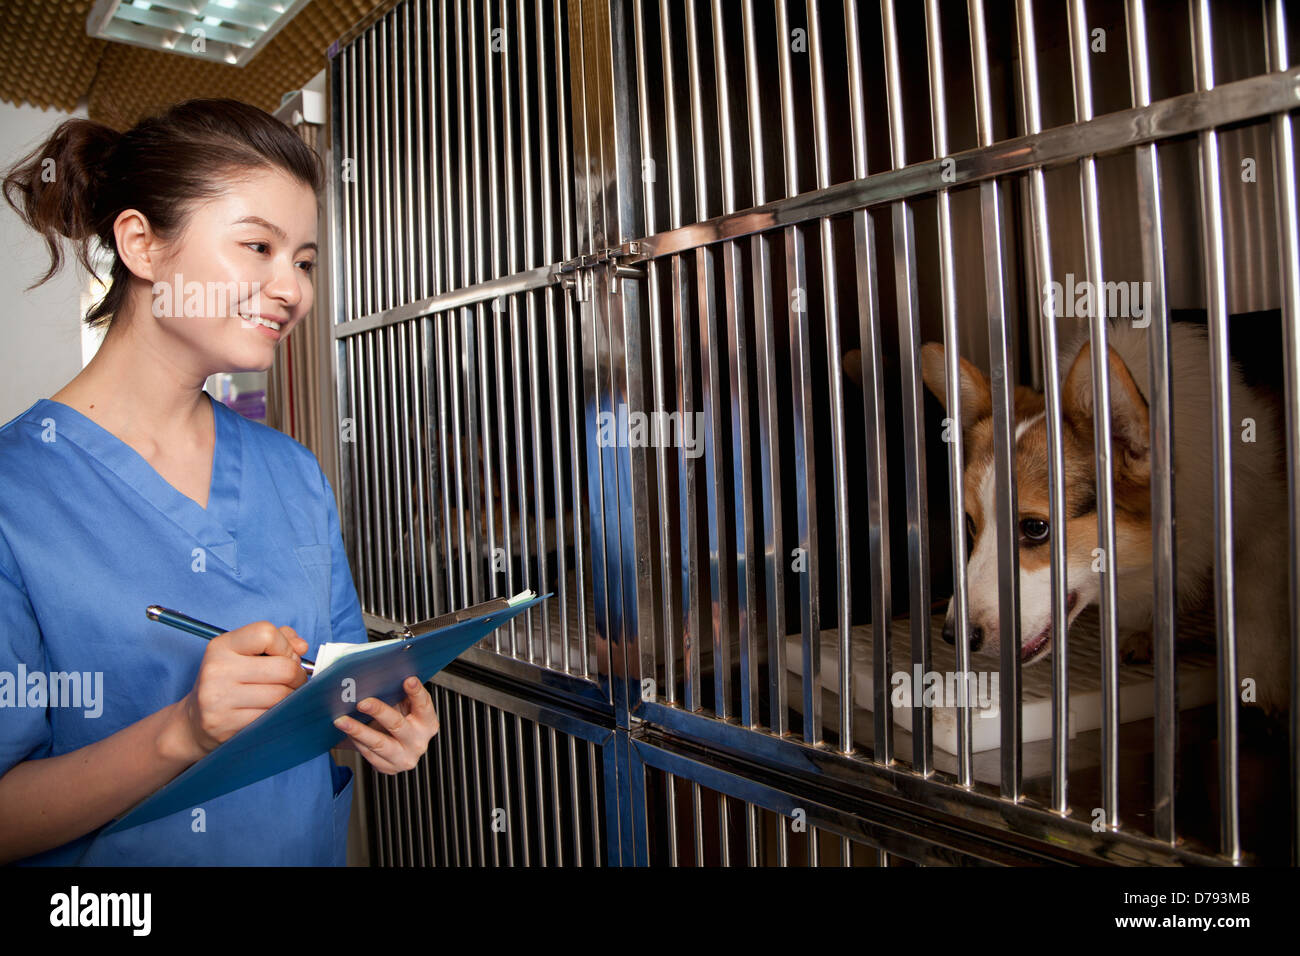 Veterinarian filling out medical chart - Stock Image